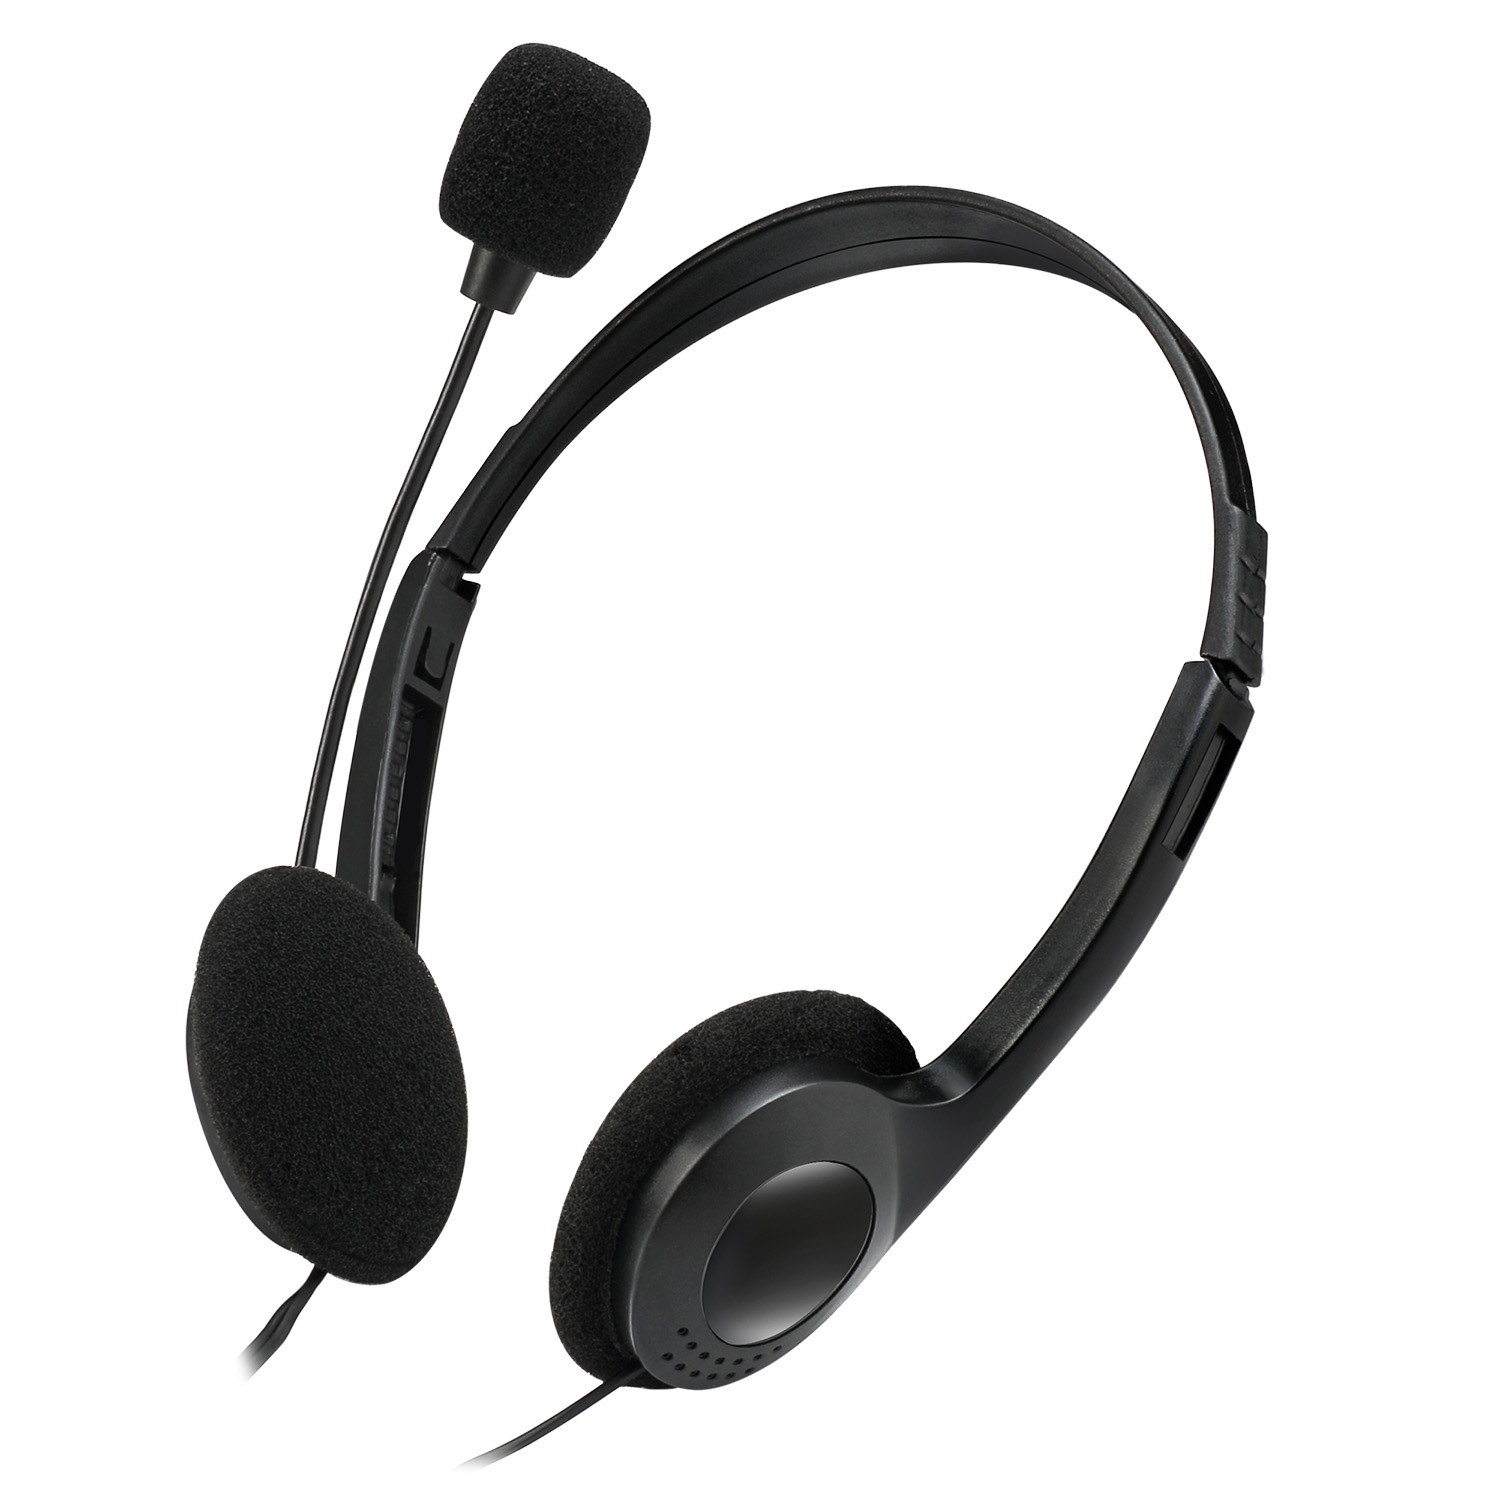 Stereo Headphone Headset With Microphone Adesso Inc Your Input Device Specialist